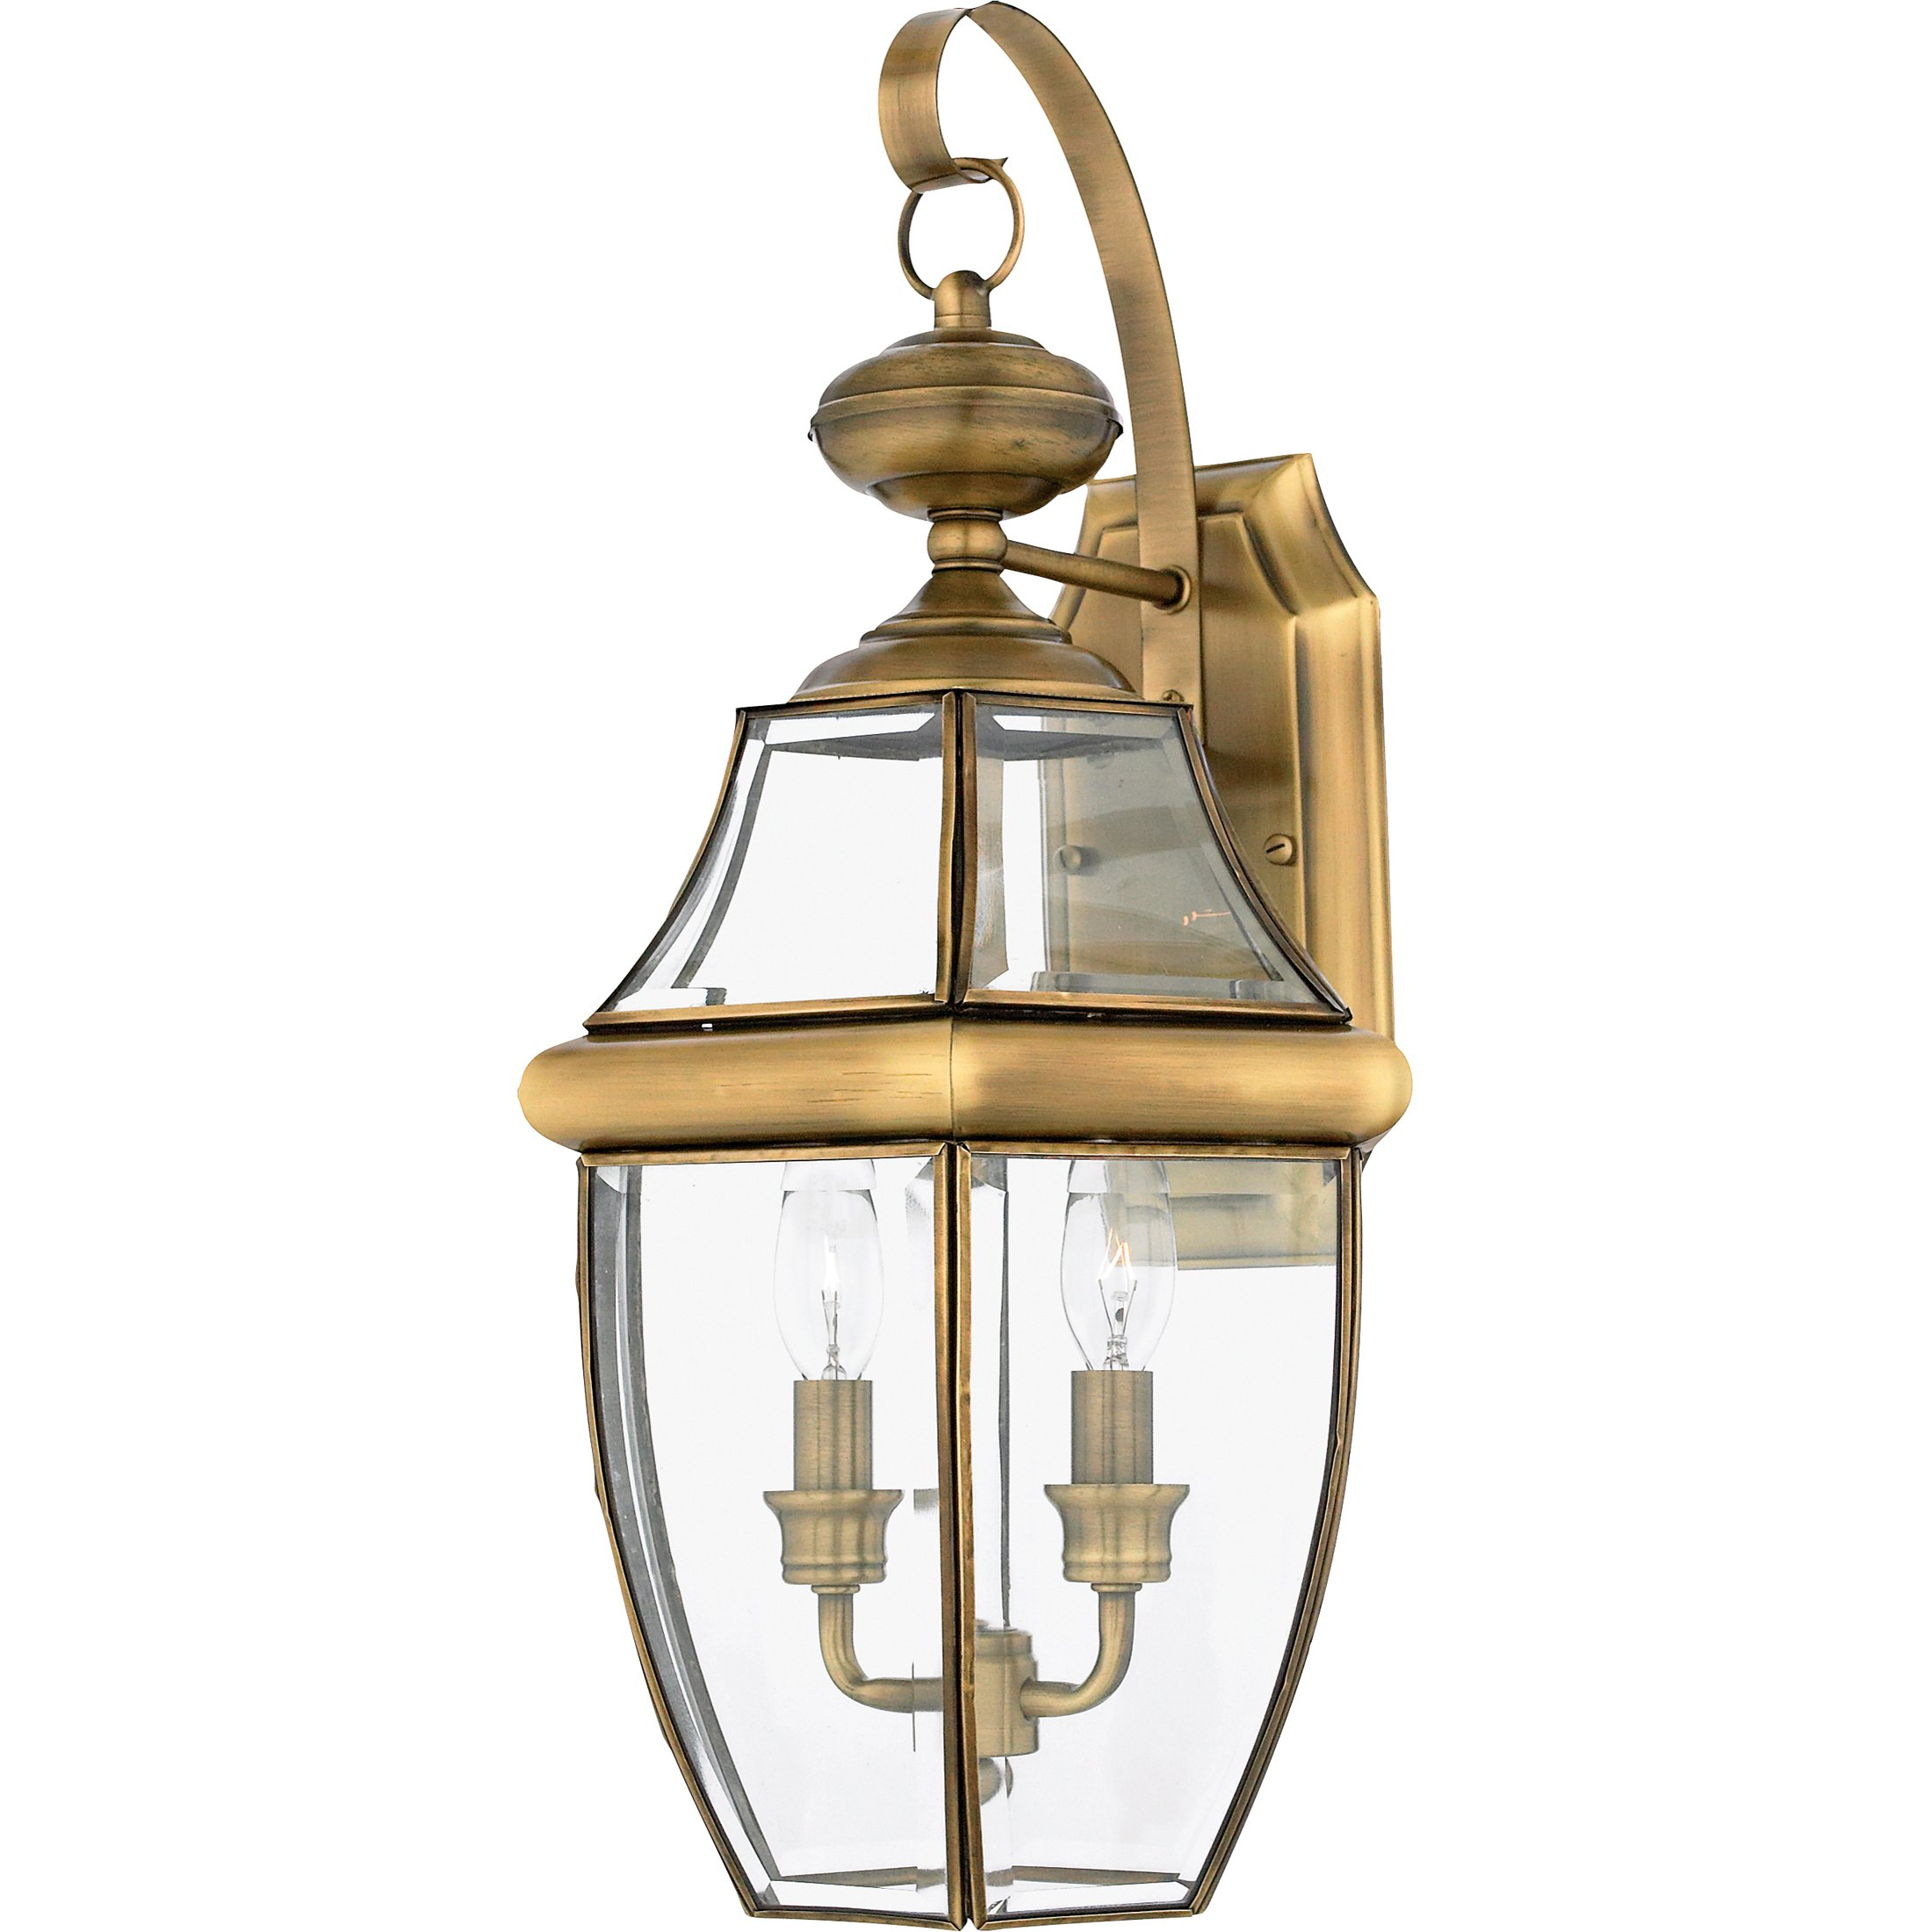 Quoizel NY8317A 2-Light Newbury Outdoor Lantern in Antique Brass